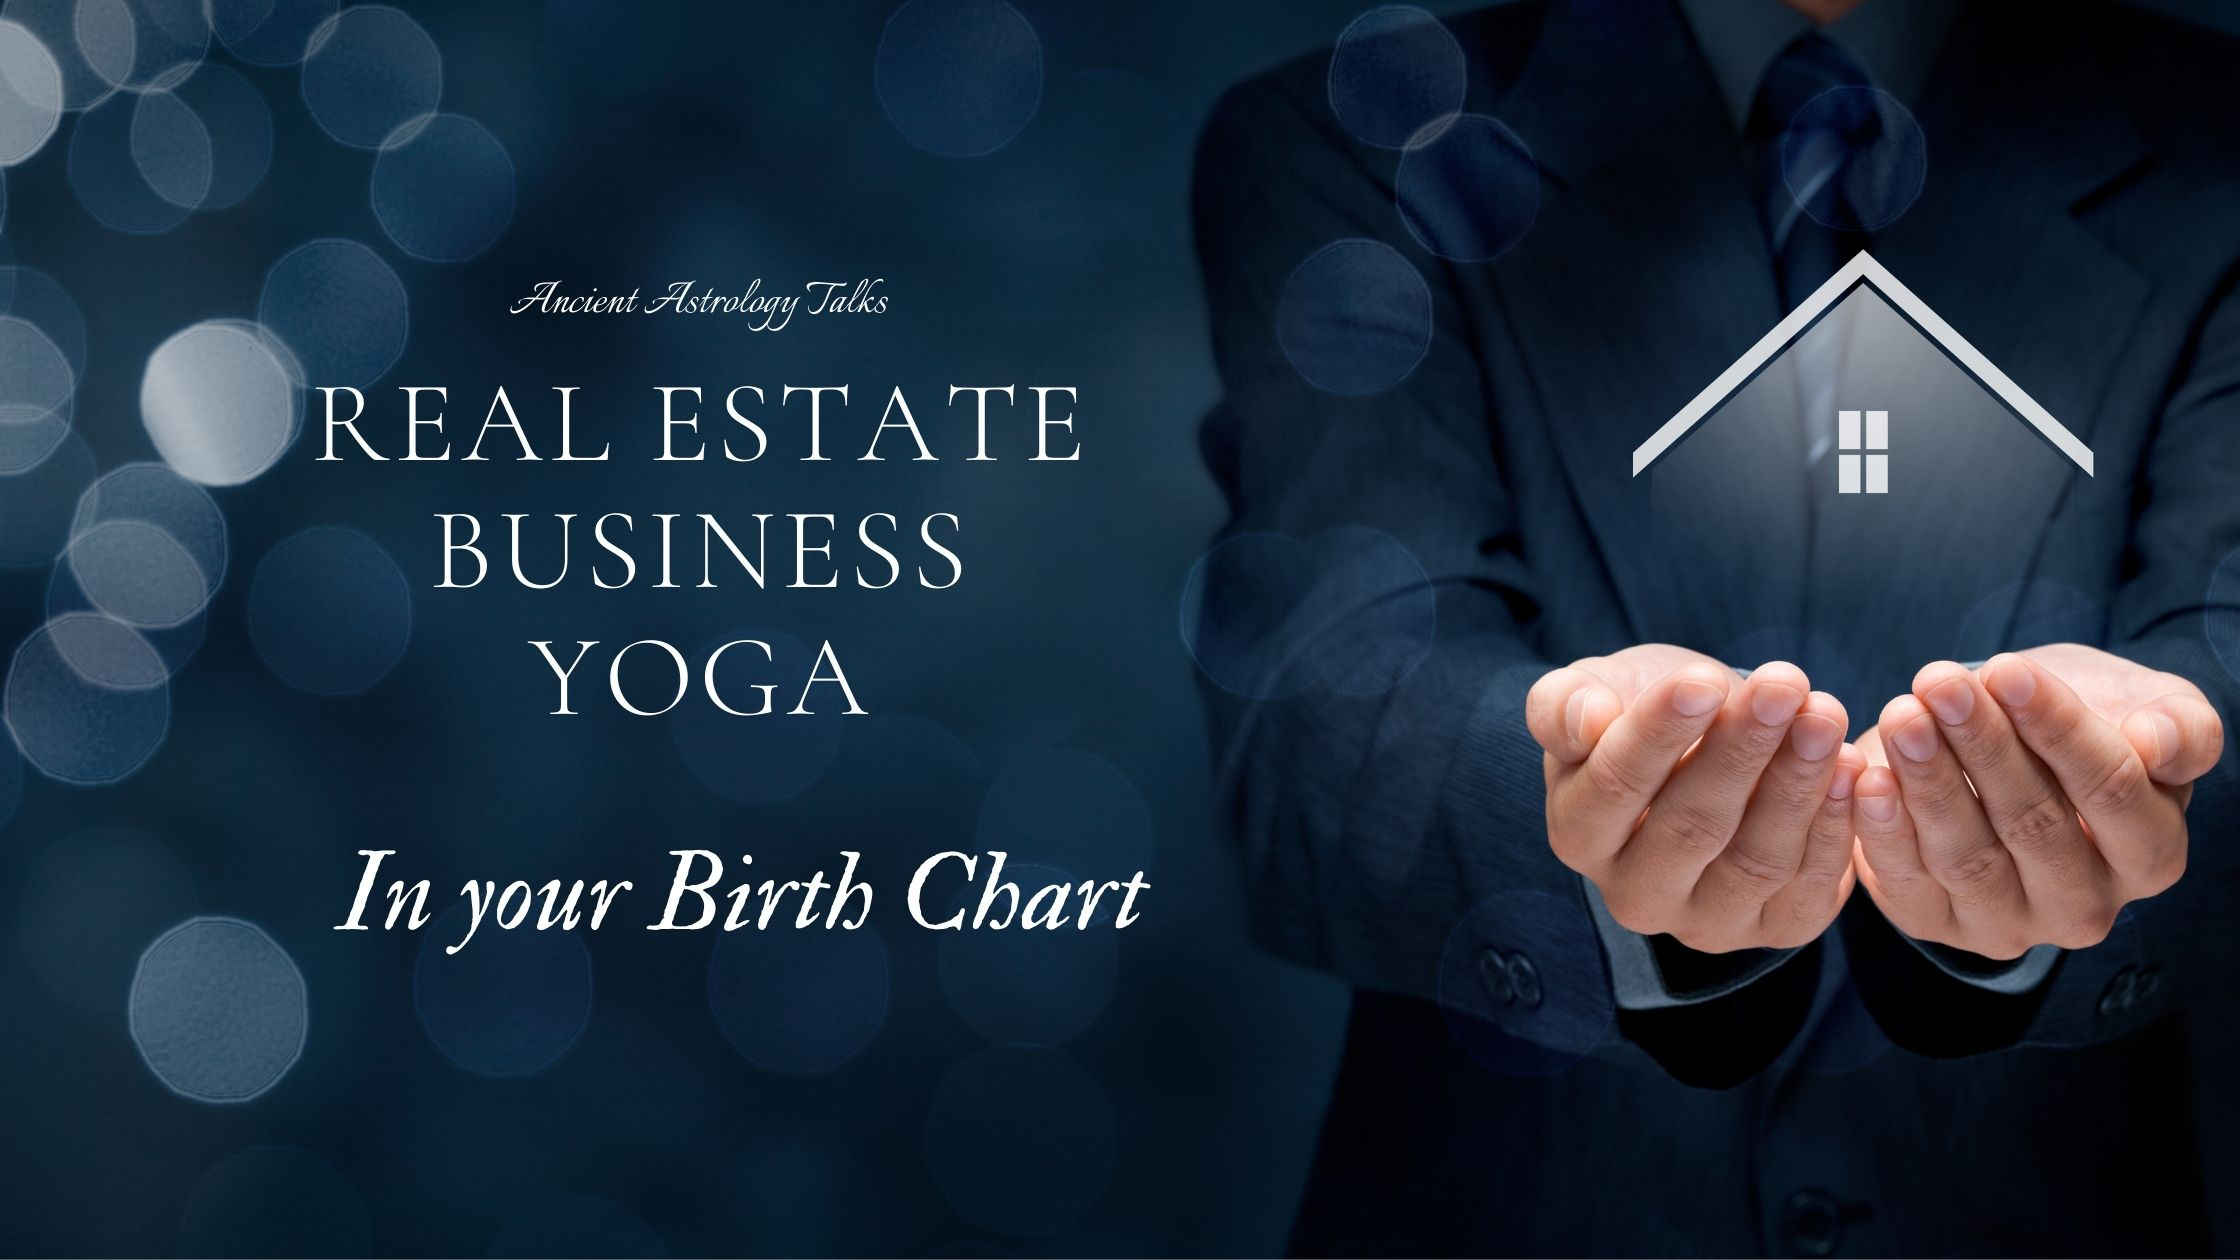 Real estate investment vedic astrology chart